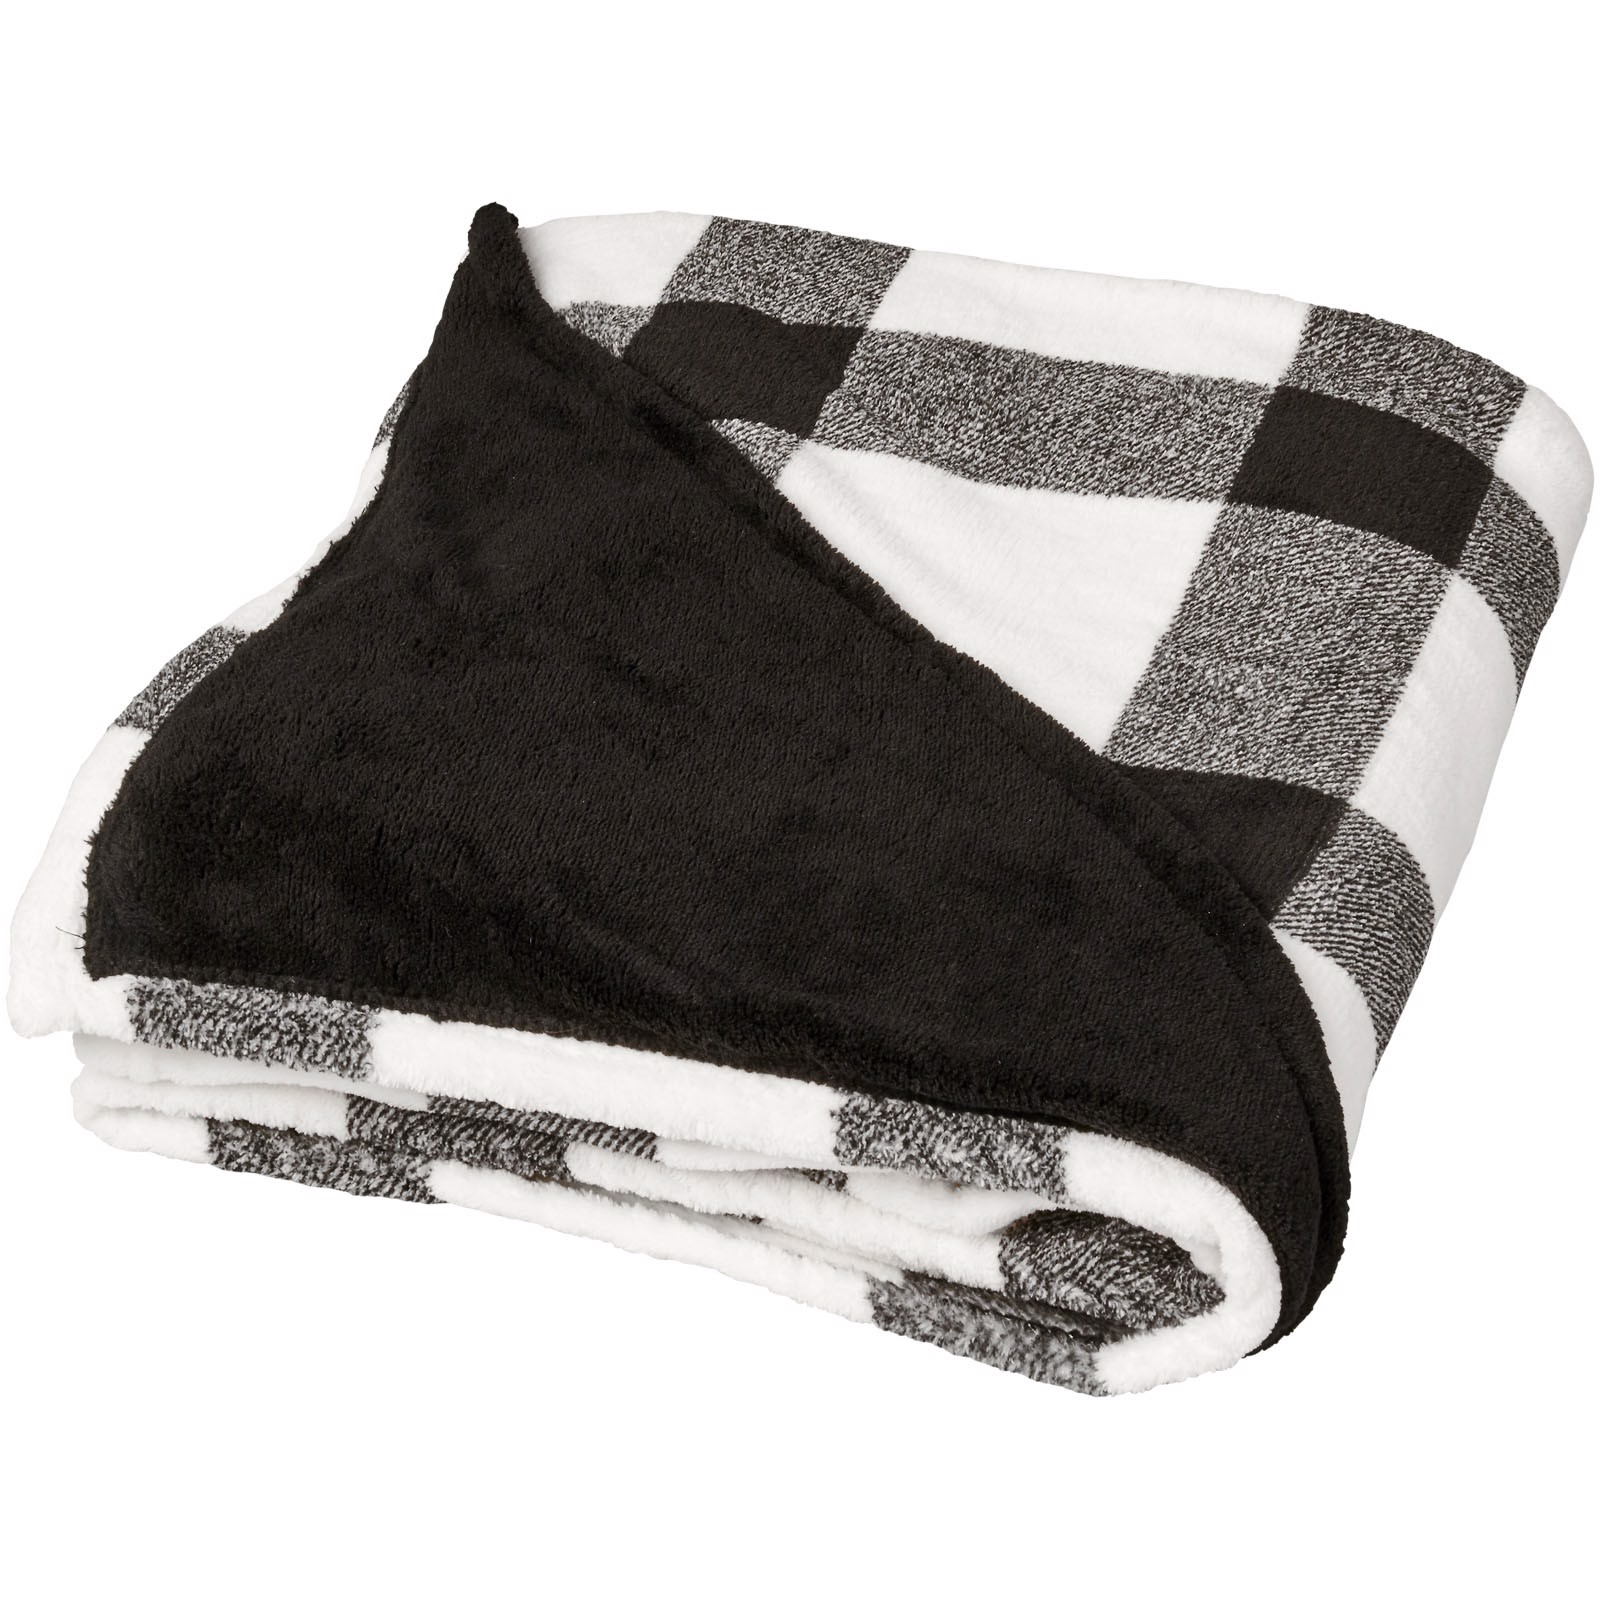 Buffalo ultra plush plaid blanket - White